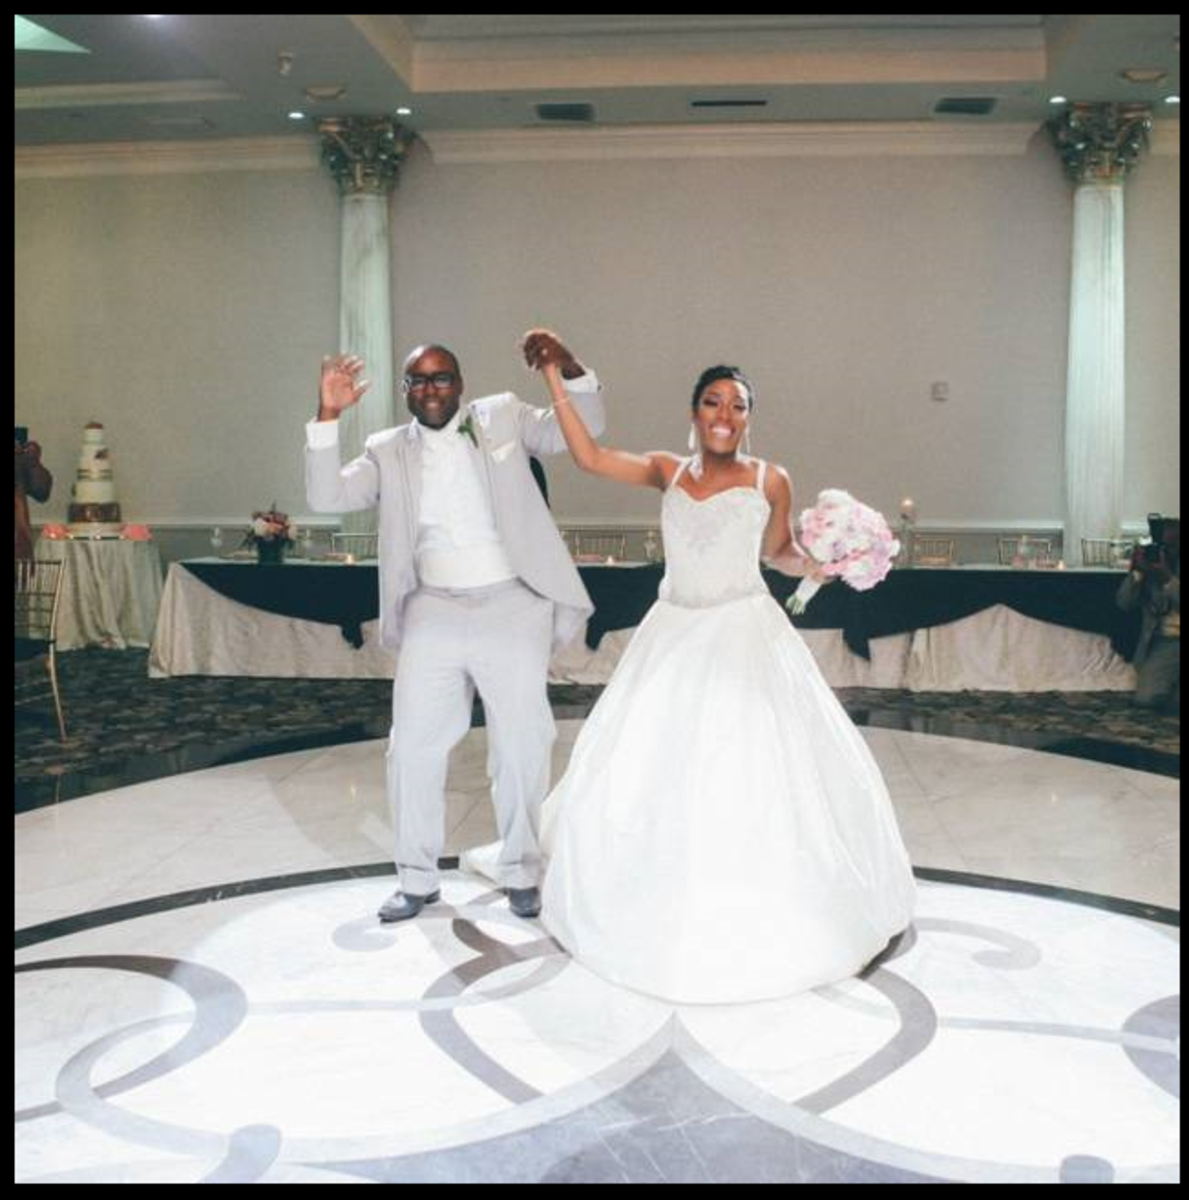 Wanisha and Moe, danced together at their wedding celebration.